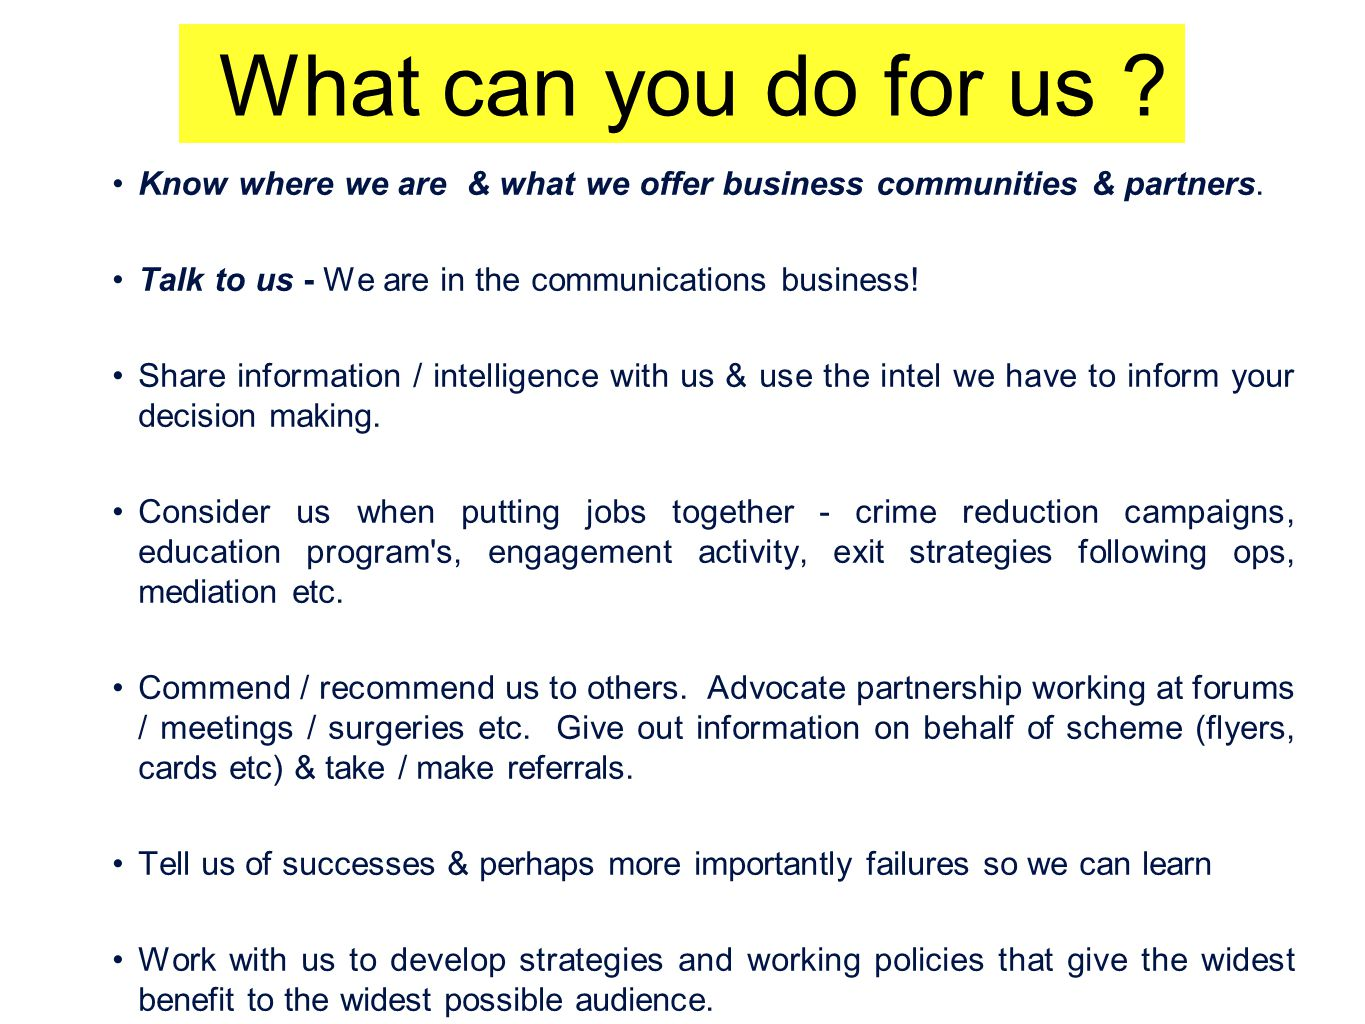 What can you do for us ? Know where we are & what we offer business communities & partners. Talk to us - We are in the communications business! Share